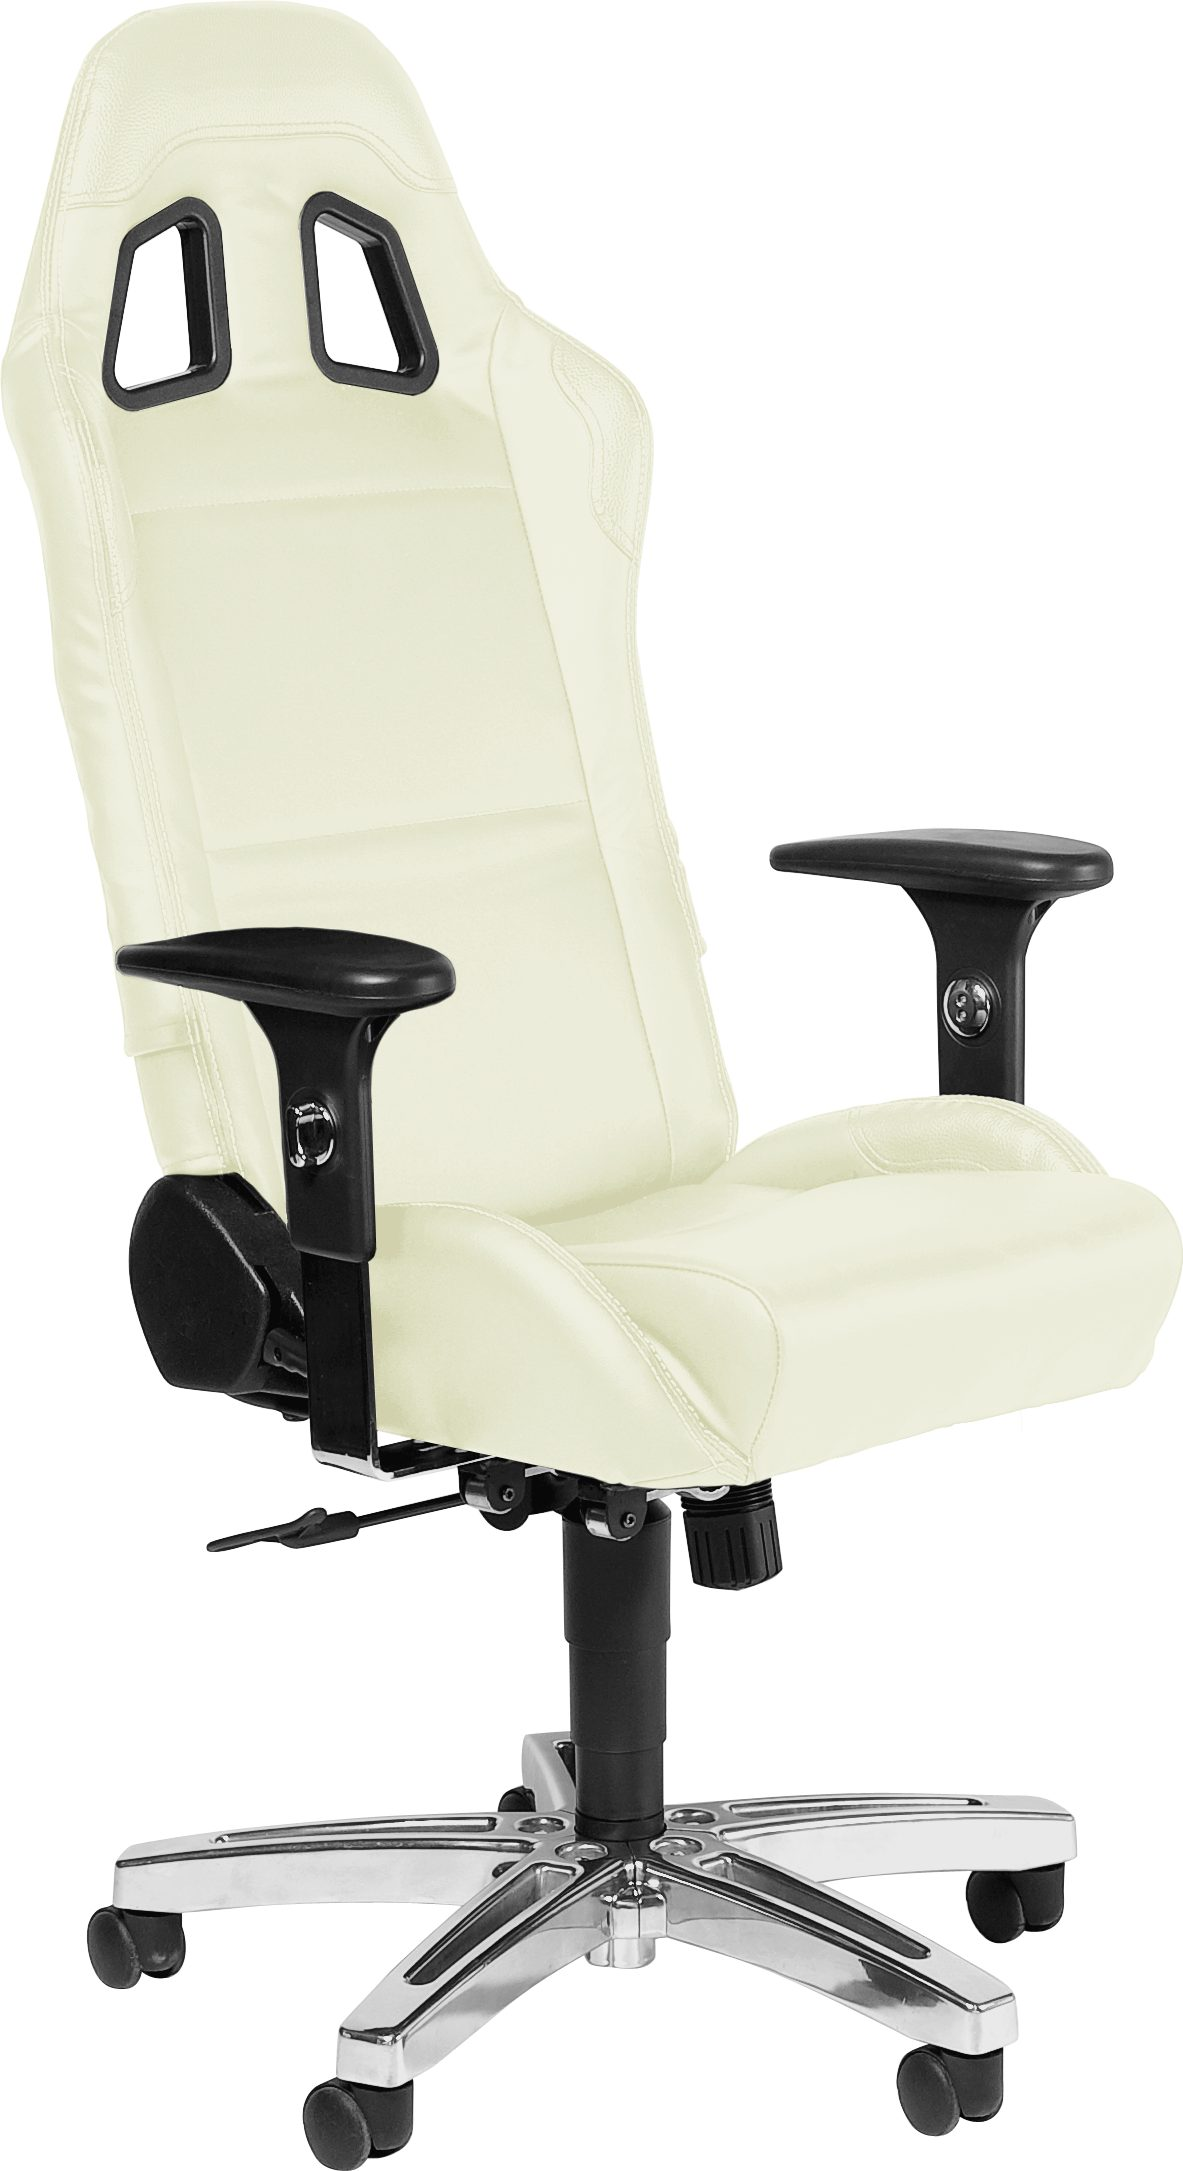 Playseats Playseat Office Sitz Weiss »PS3 PS4 PC X360 XBox One«